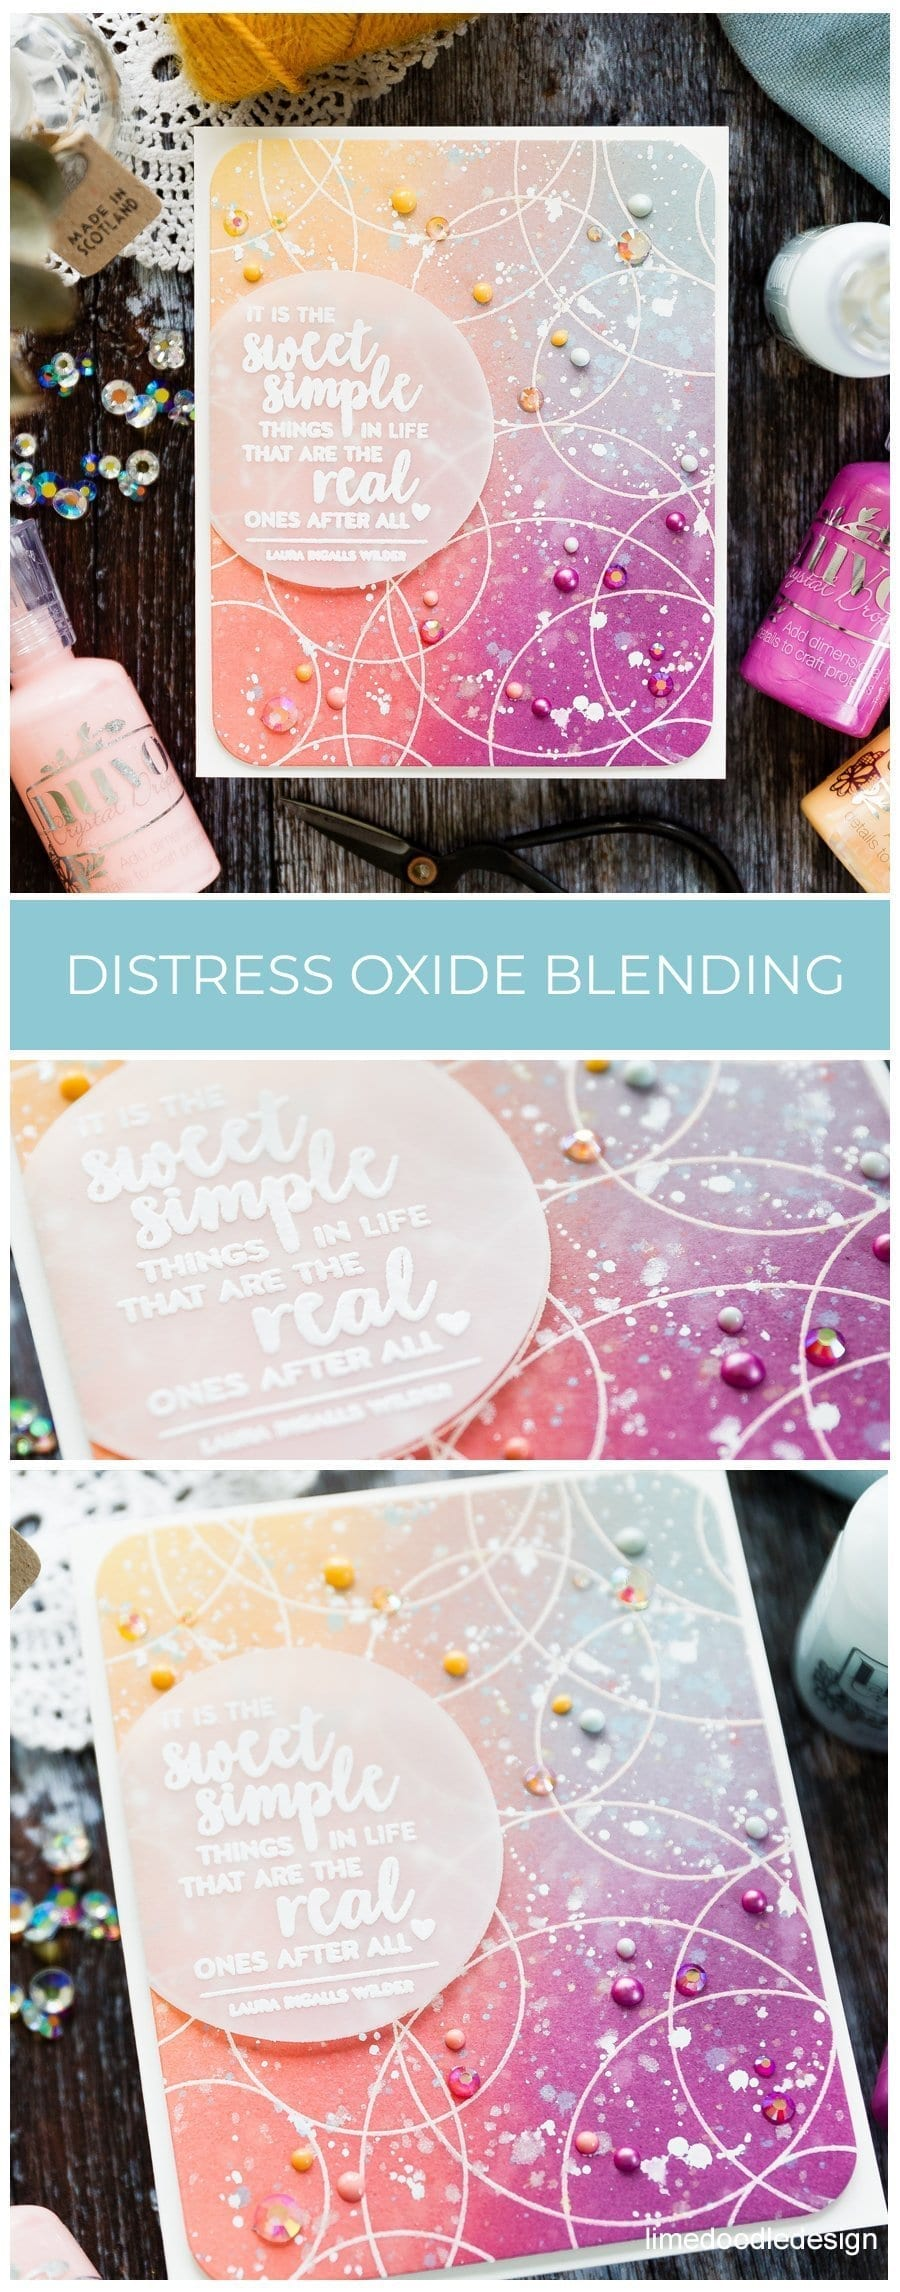 Tips on blending Tim Holtz Distress Oxides over a heat embossed background. Handmade card by Debby Hughes using supplies from Simon Says Stamp. Find out more here: https://limedoodledesign.com/2019/06/video-distress-oxide-ink-blending/